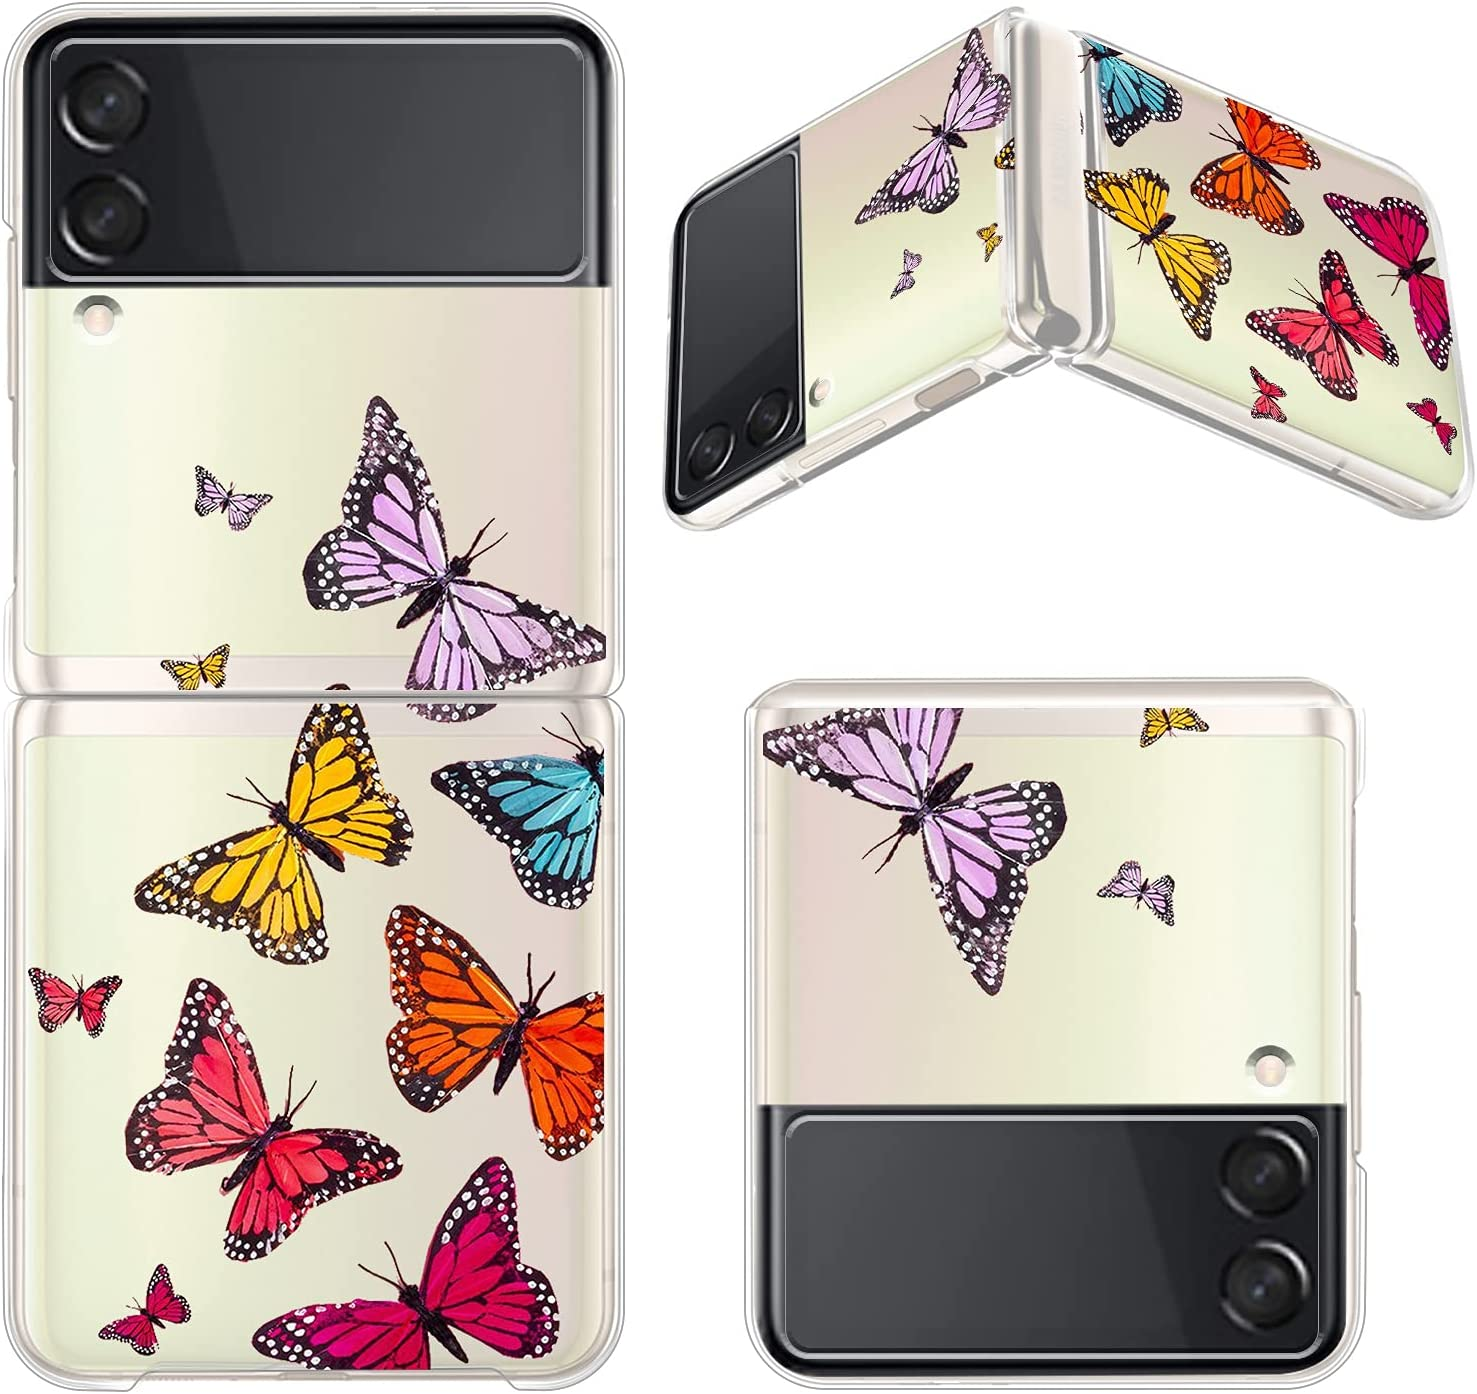 ZIYE Clear Case for Samsung Galaxy Z Flip 3 5G Case Elegant Colorful Butterfly Design Shockproof Hard PC Transparent Protective Phone Case for Women Girls Girly Samsung Galaxy Z Flip 3 Case